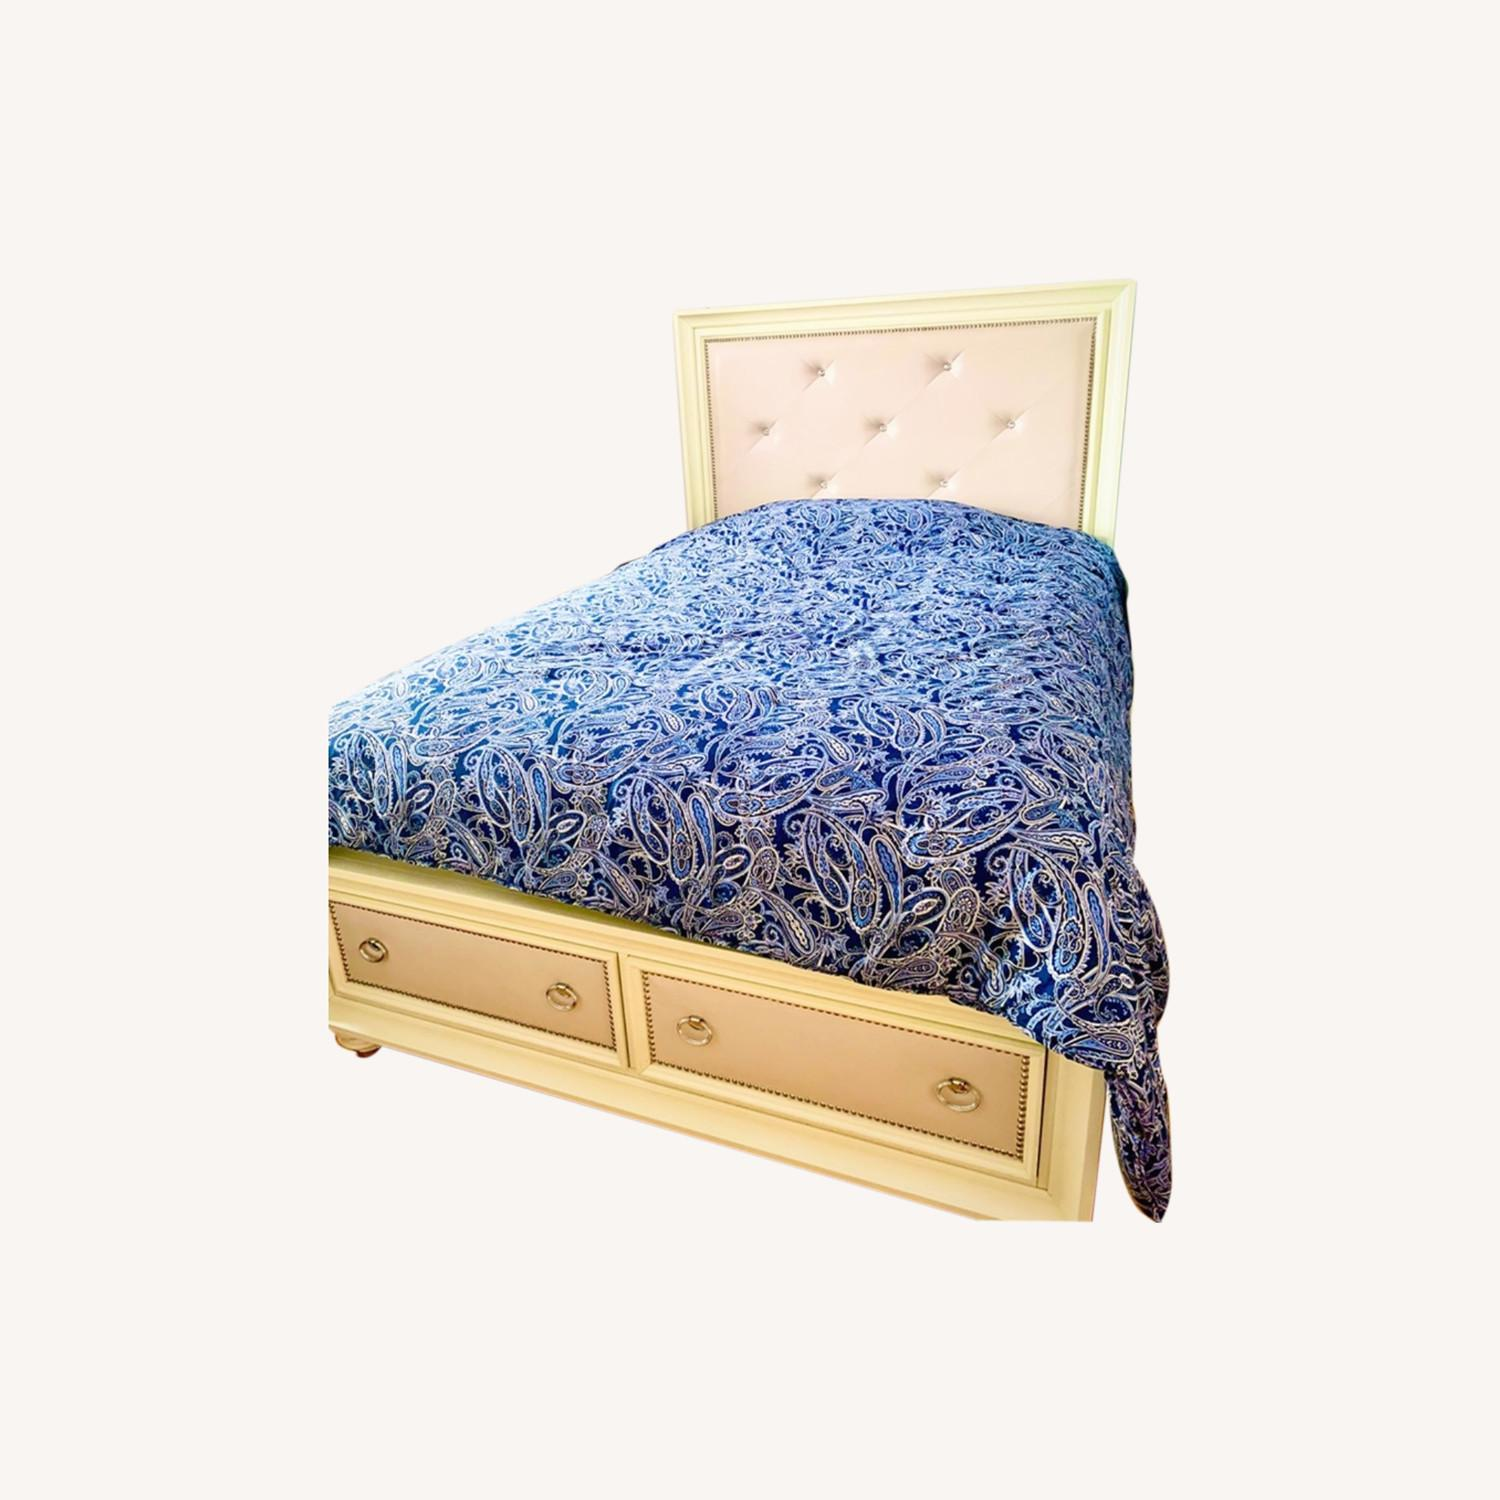 Huffman Koos Furniture Queen Bed Frame w/ 2 Drawers - image-0